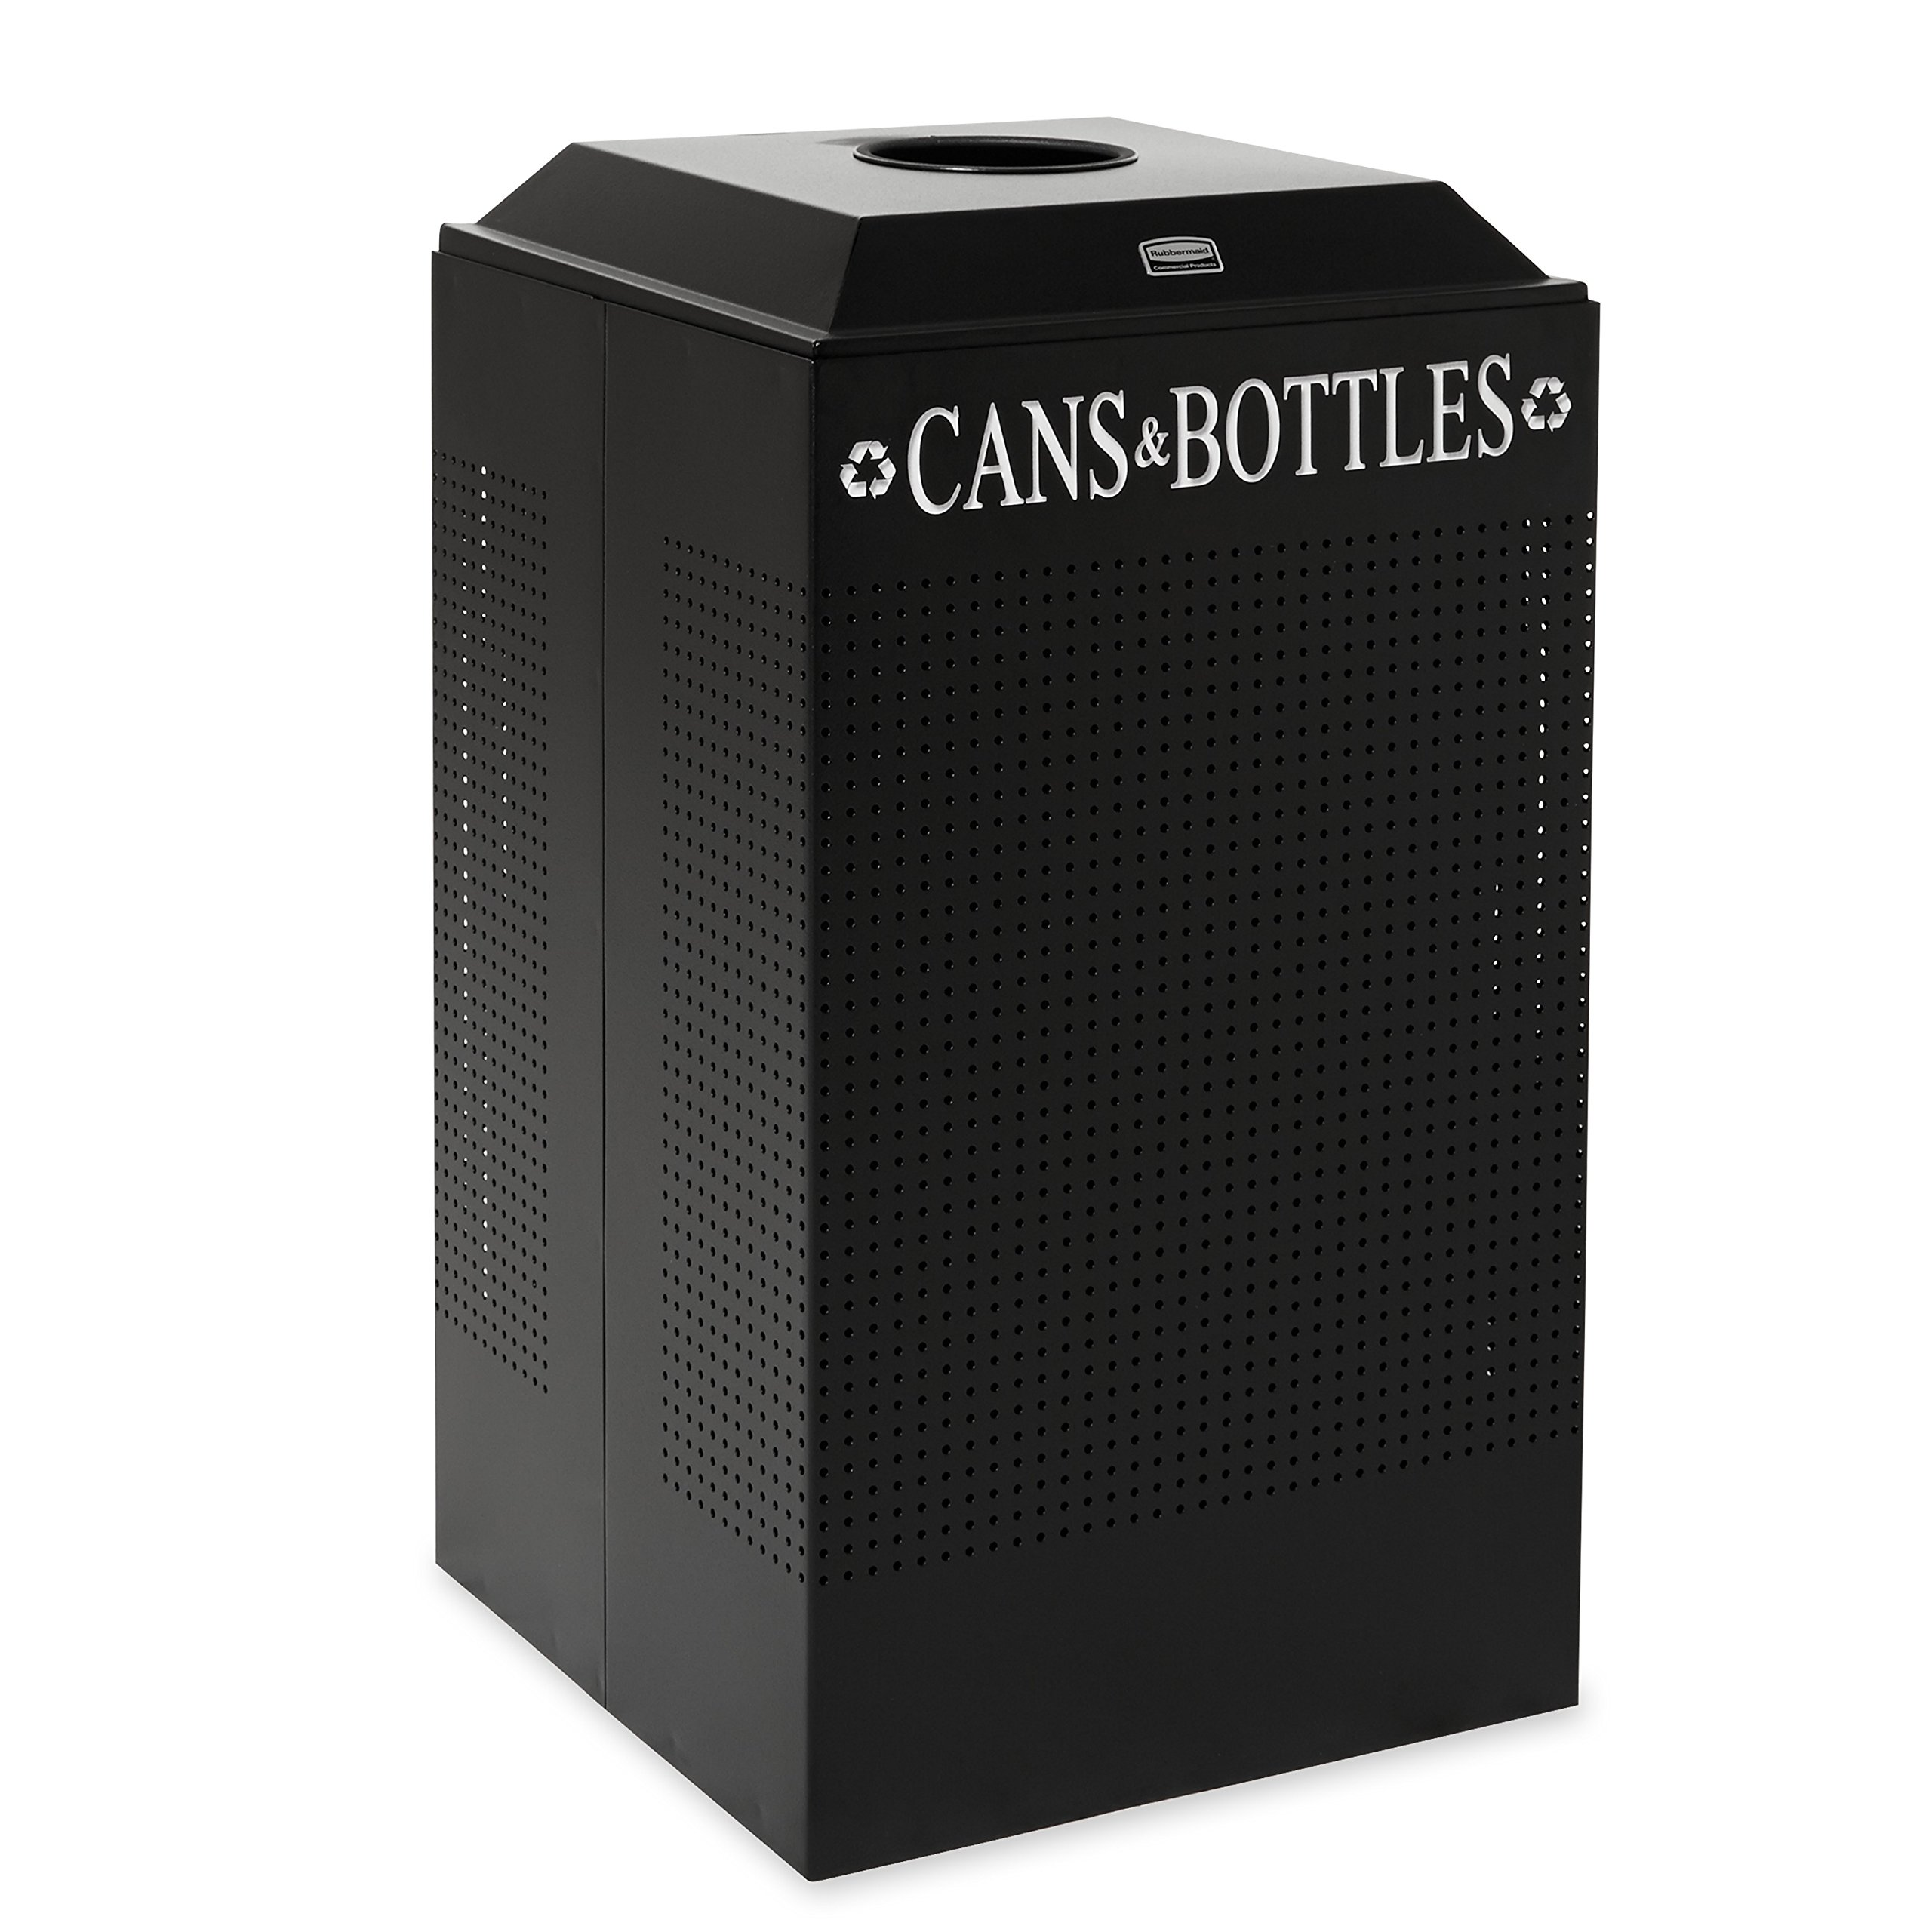 Rubbermaid Commercial Steel 29-Gallon Silhouette Recycling Receptacle for Cans Bottles, Legend -InchCans Bottles-Inch, Square, Black